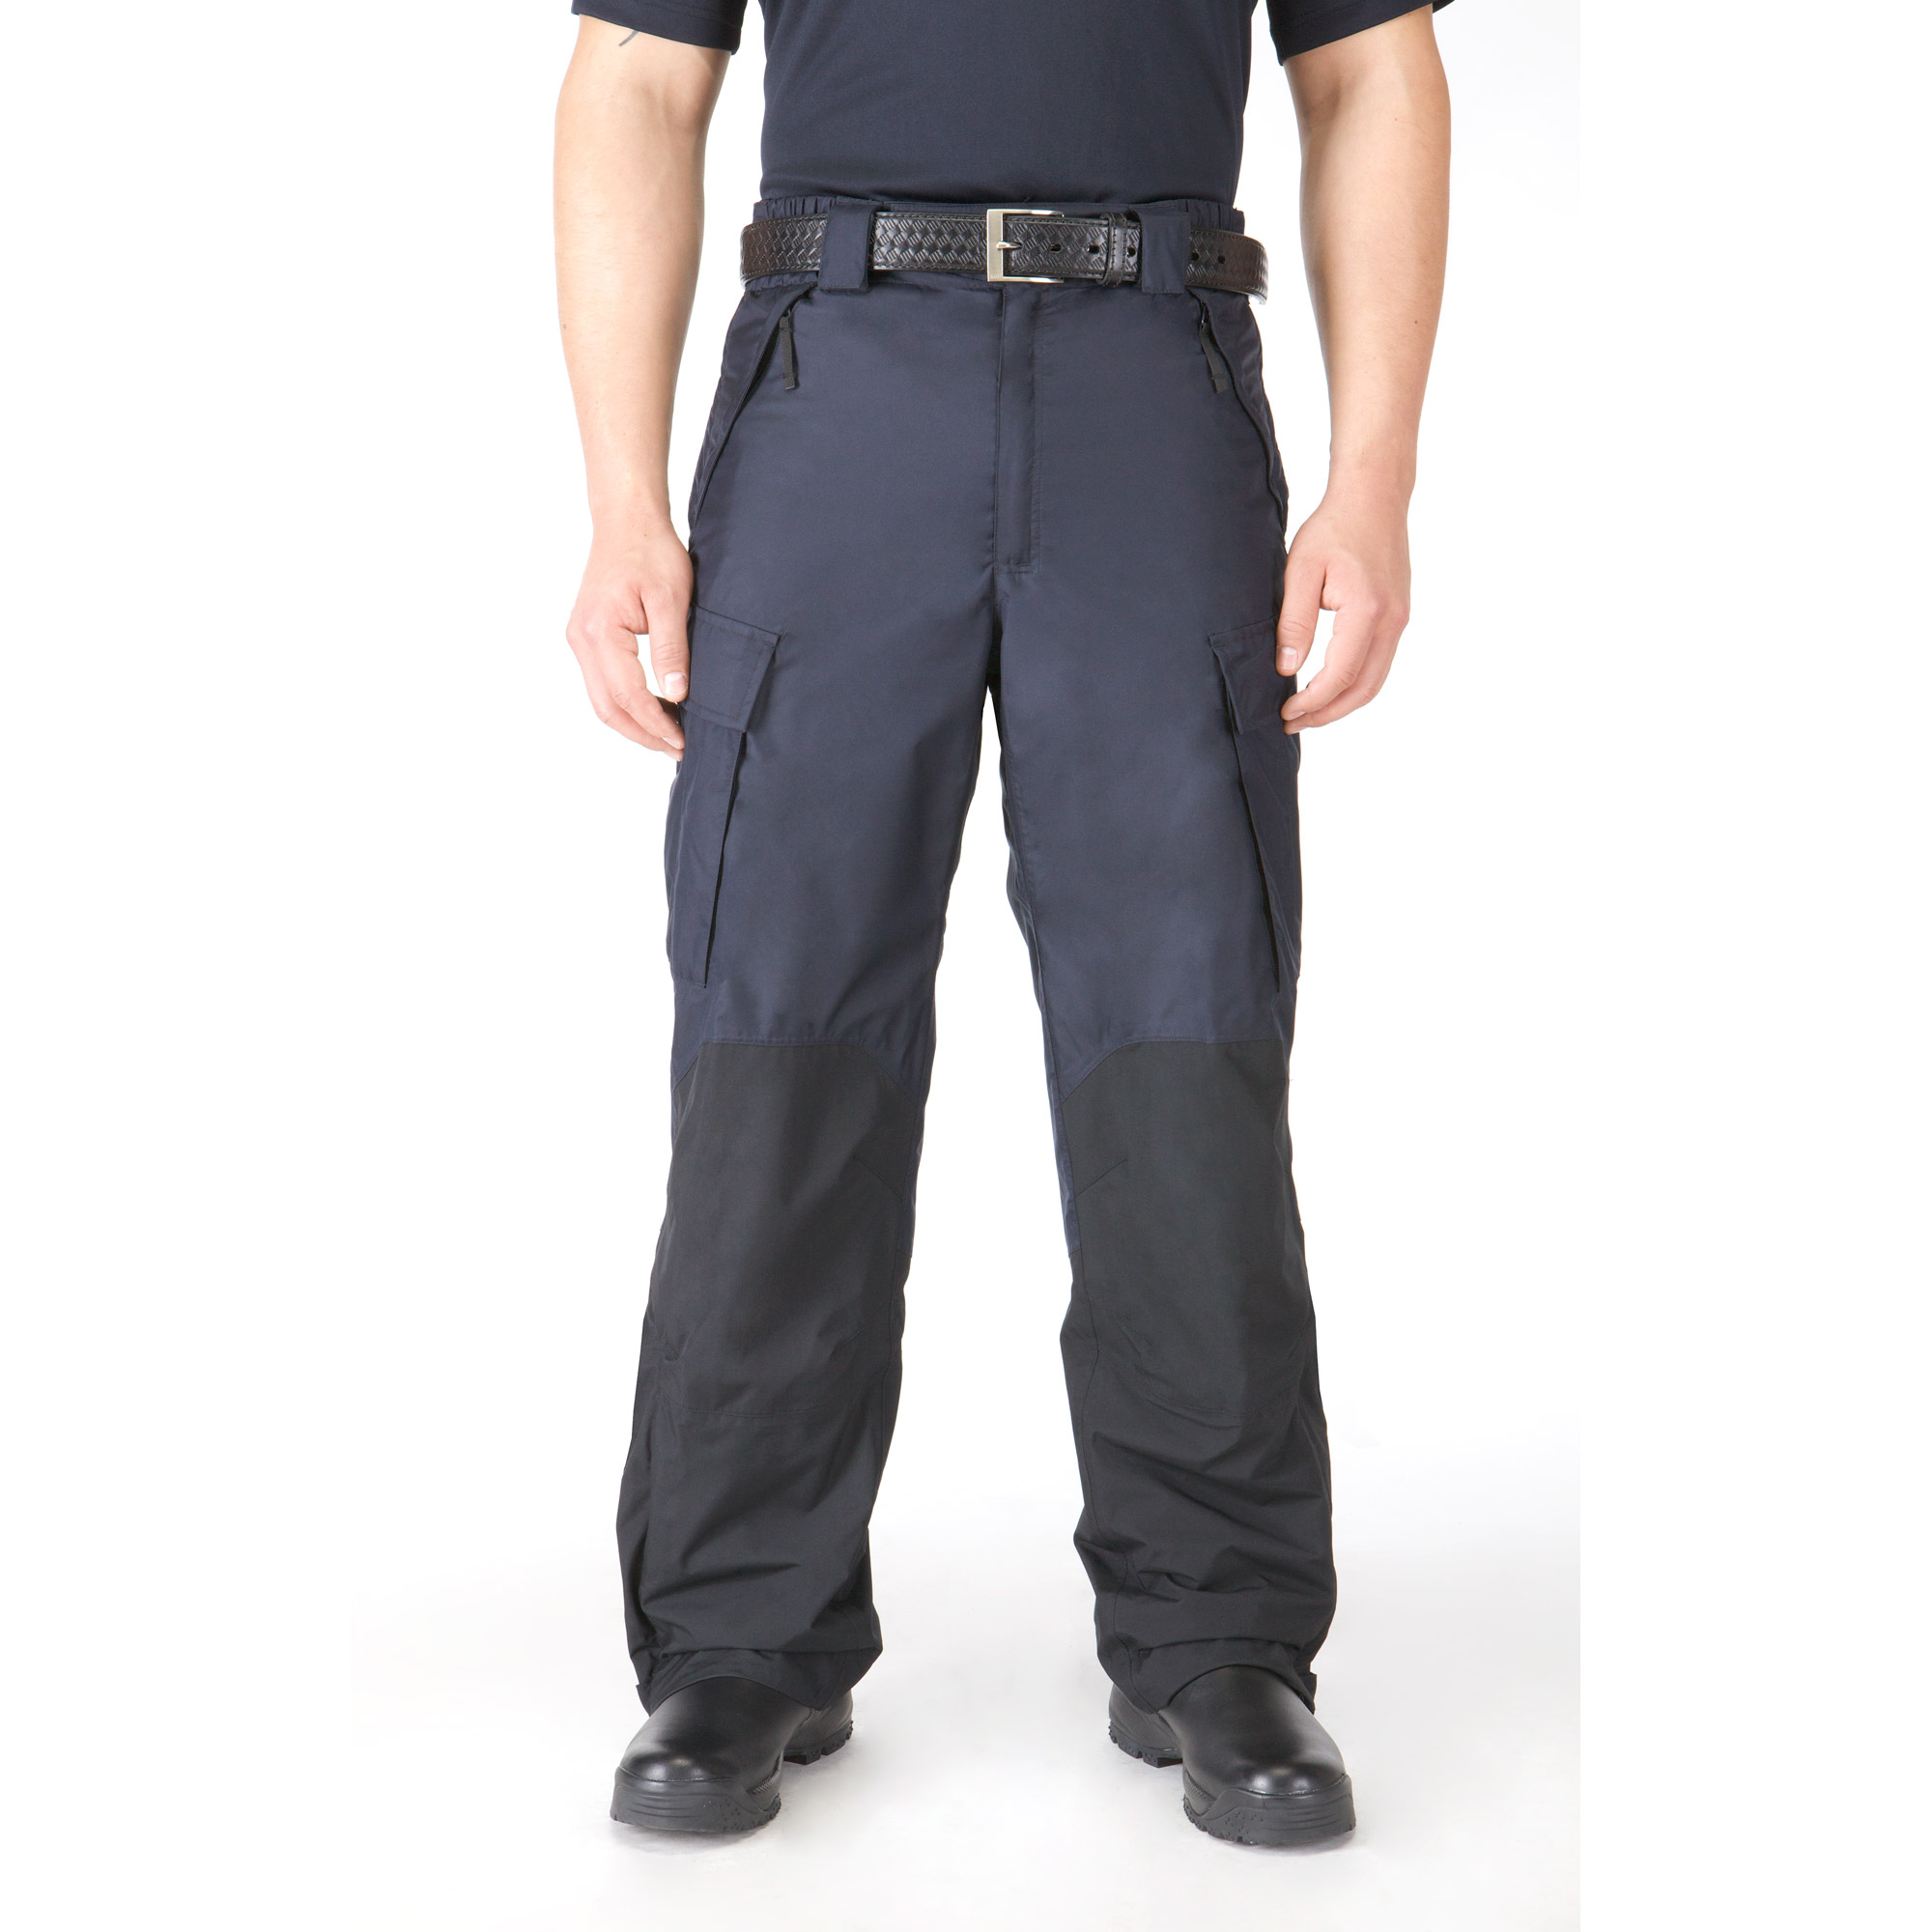 5.11 Tactical Men's Patrol Rain Pant (Blue)